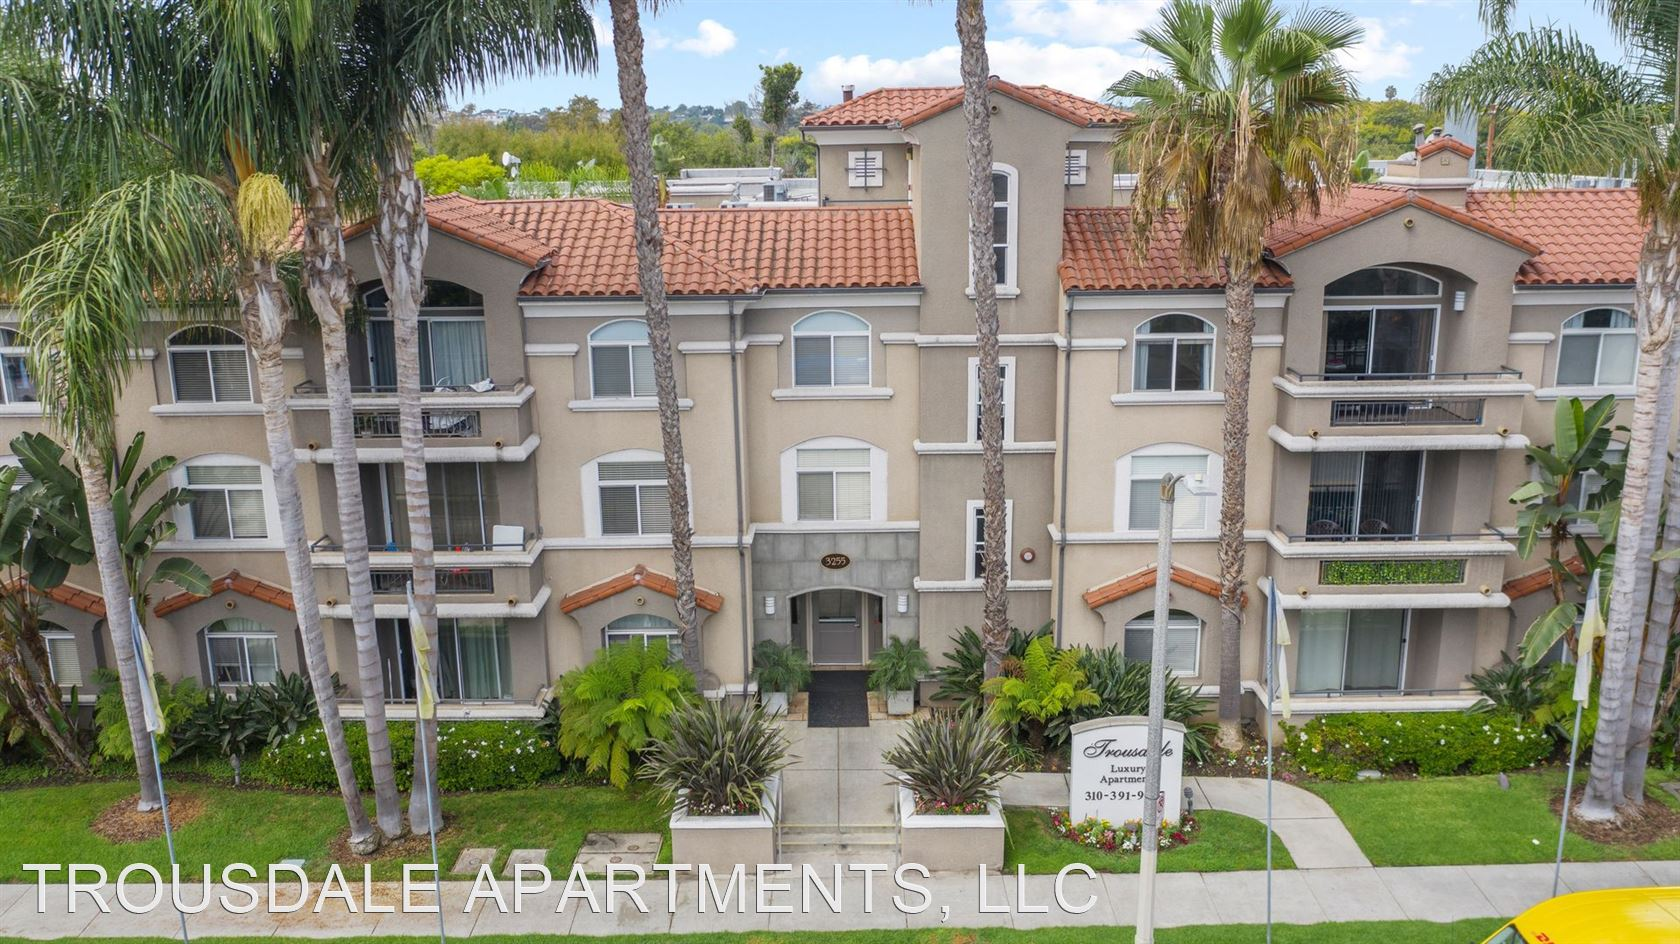 Trousdale Apartments LLC 3255 Sawtelle Boulevard